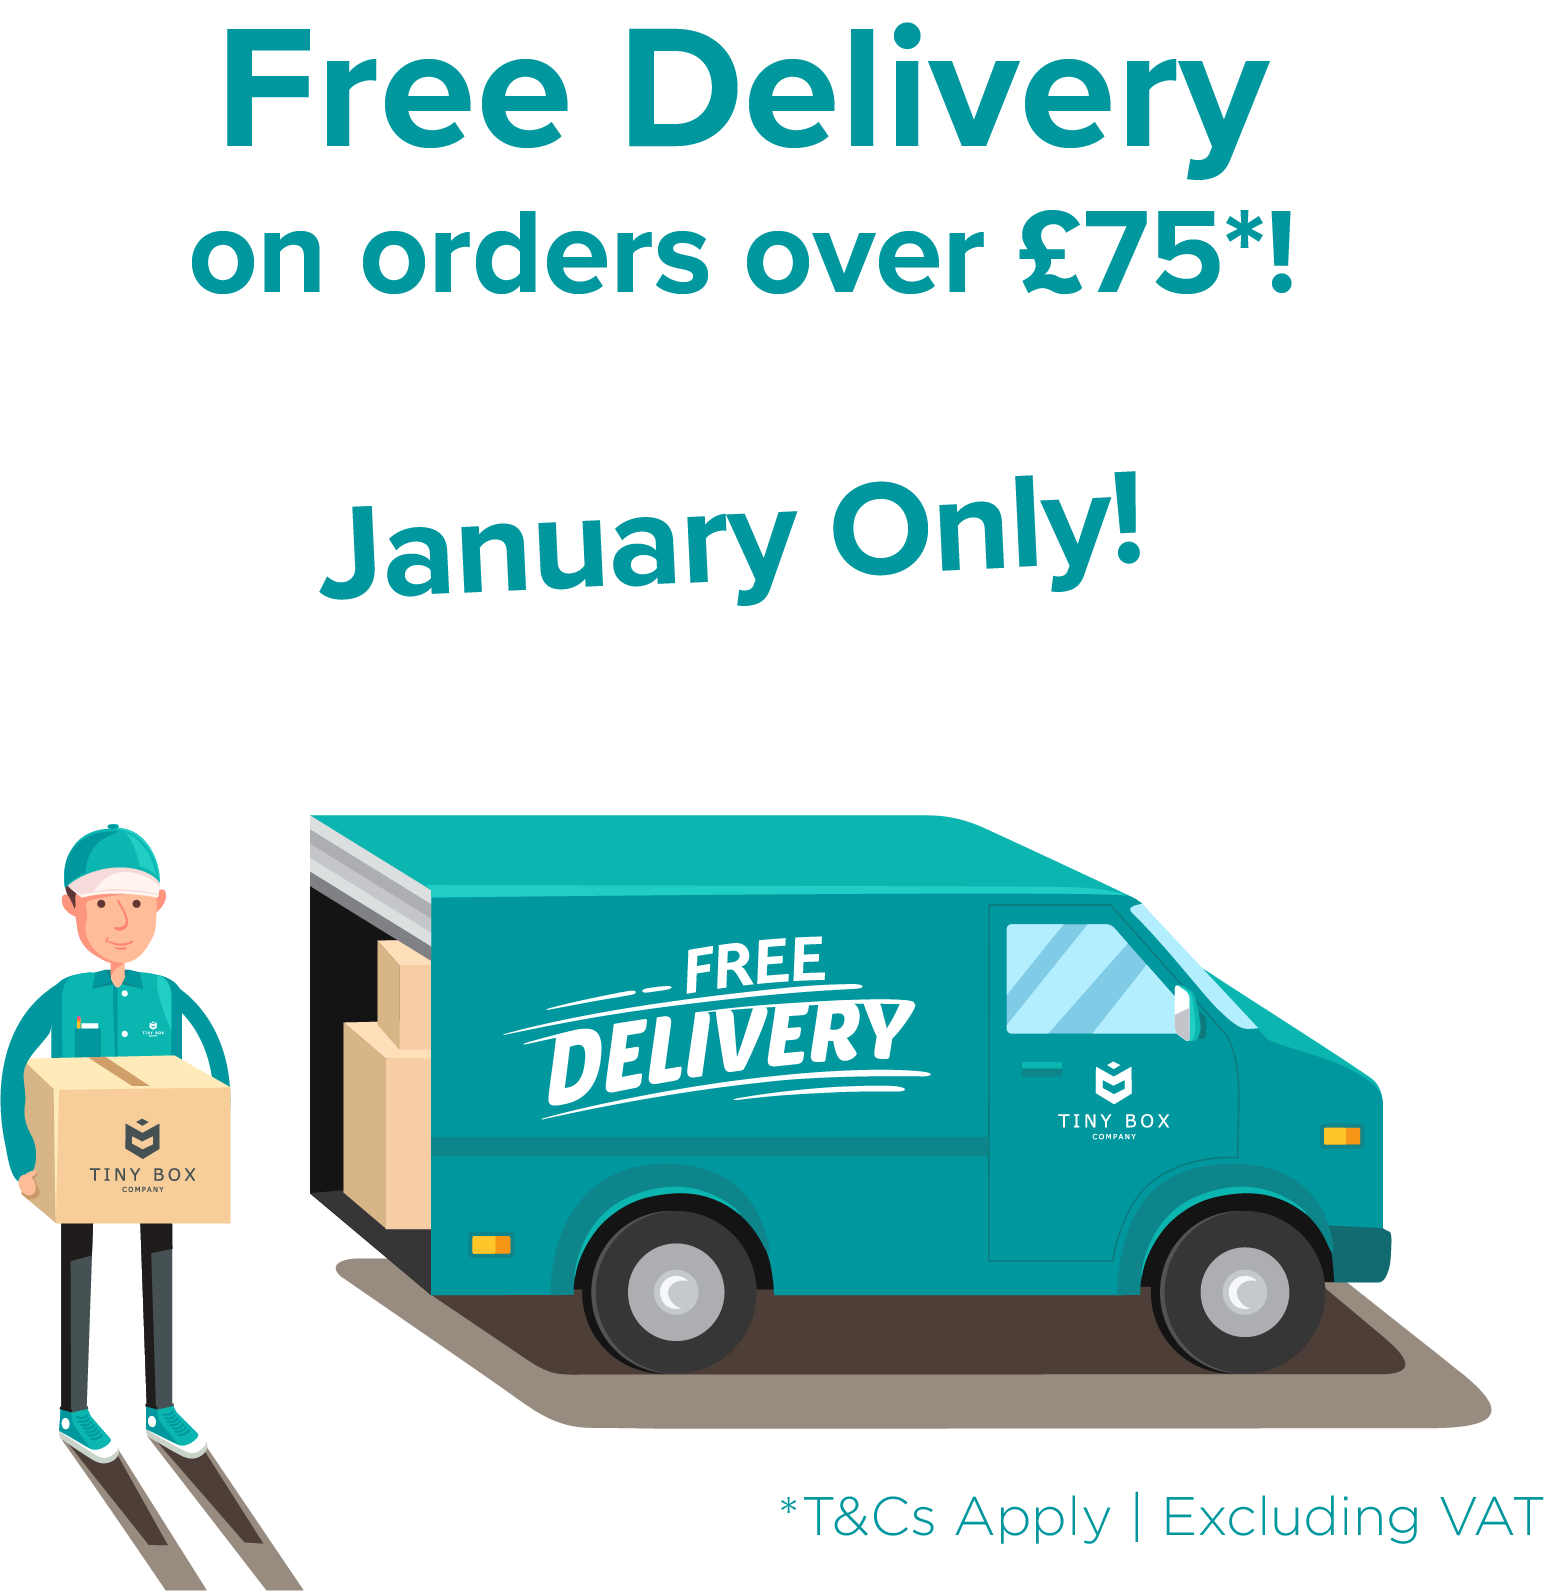 Free Delivery* until 31st January 2018